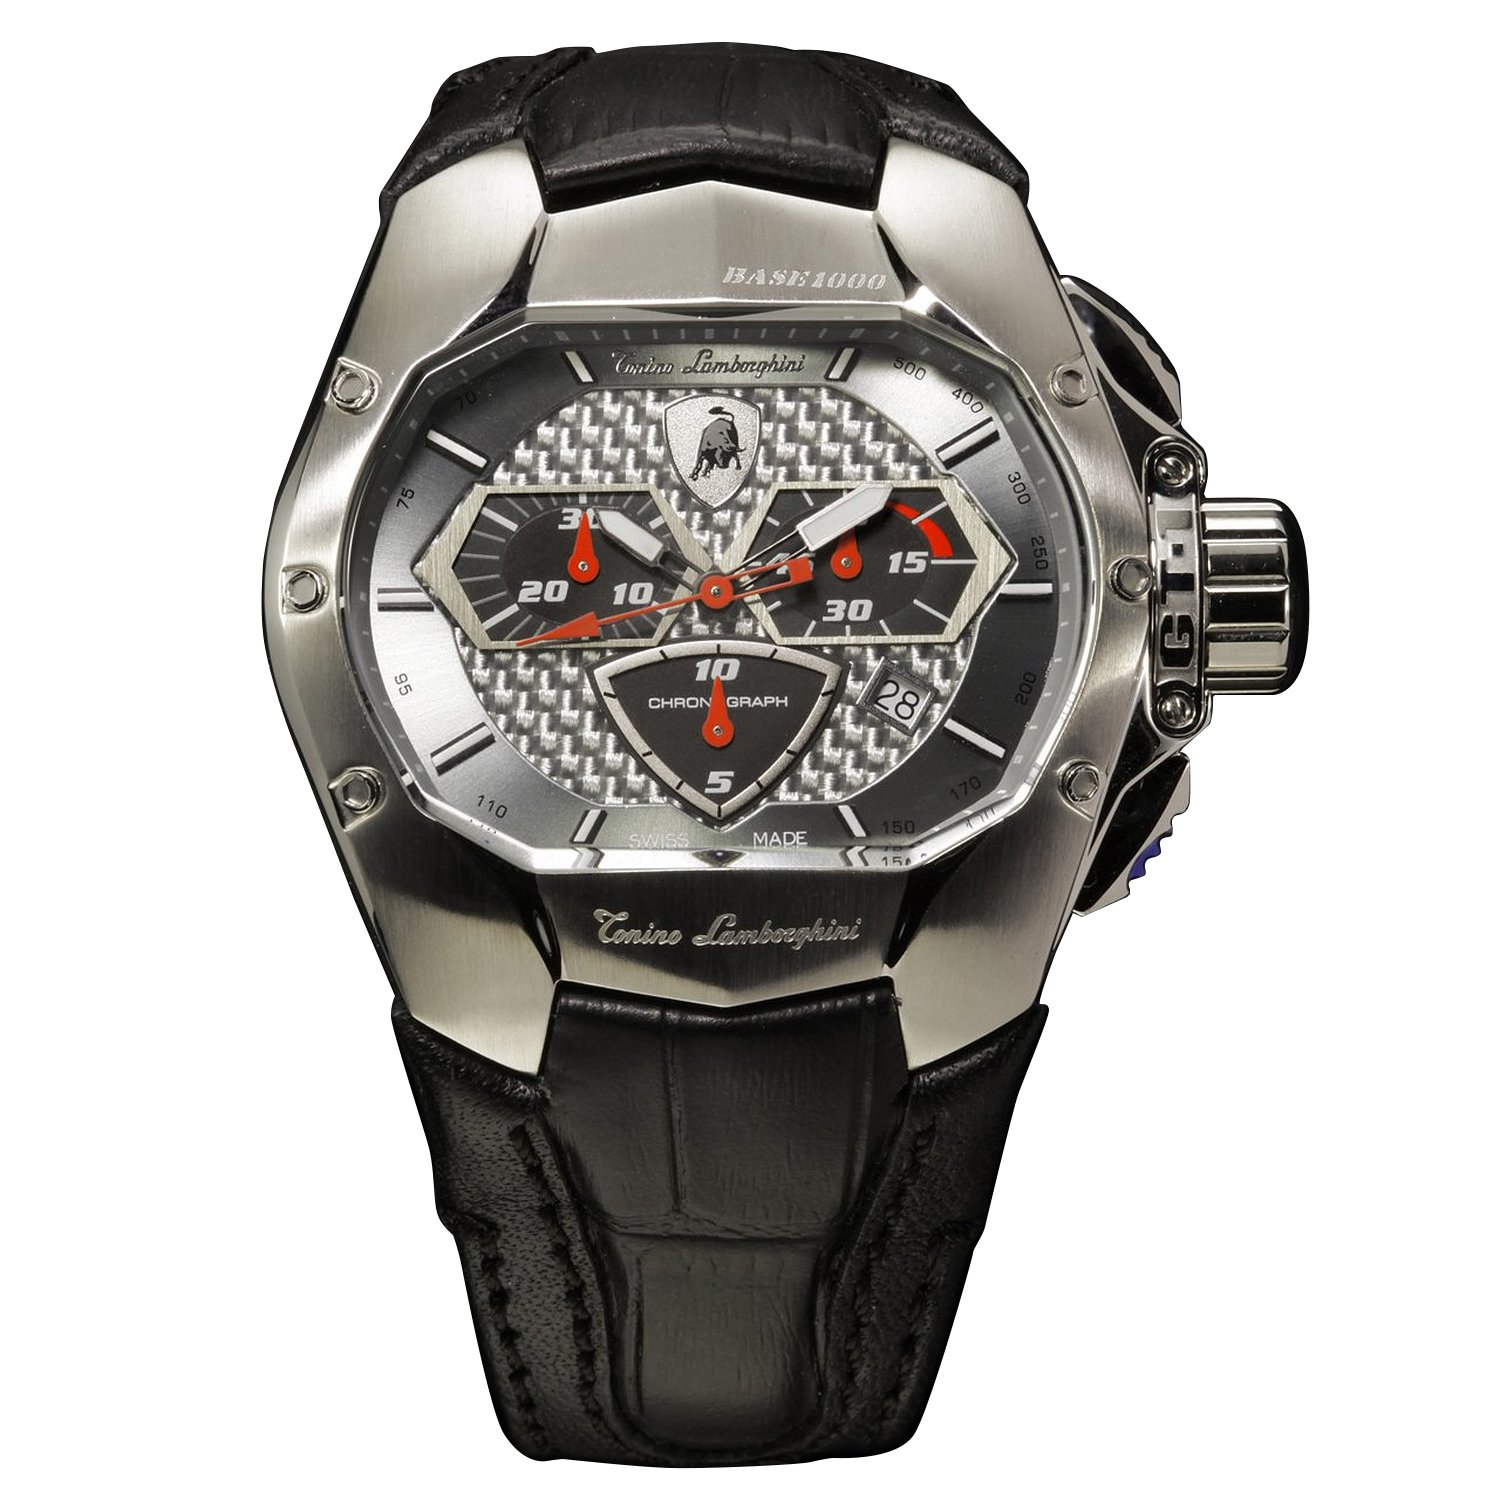 Tonino Lamborghini GT1 Chronograph 860S Watch by Tonino Lamborghini